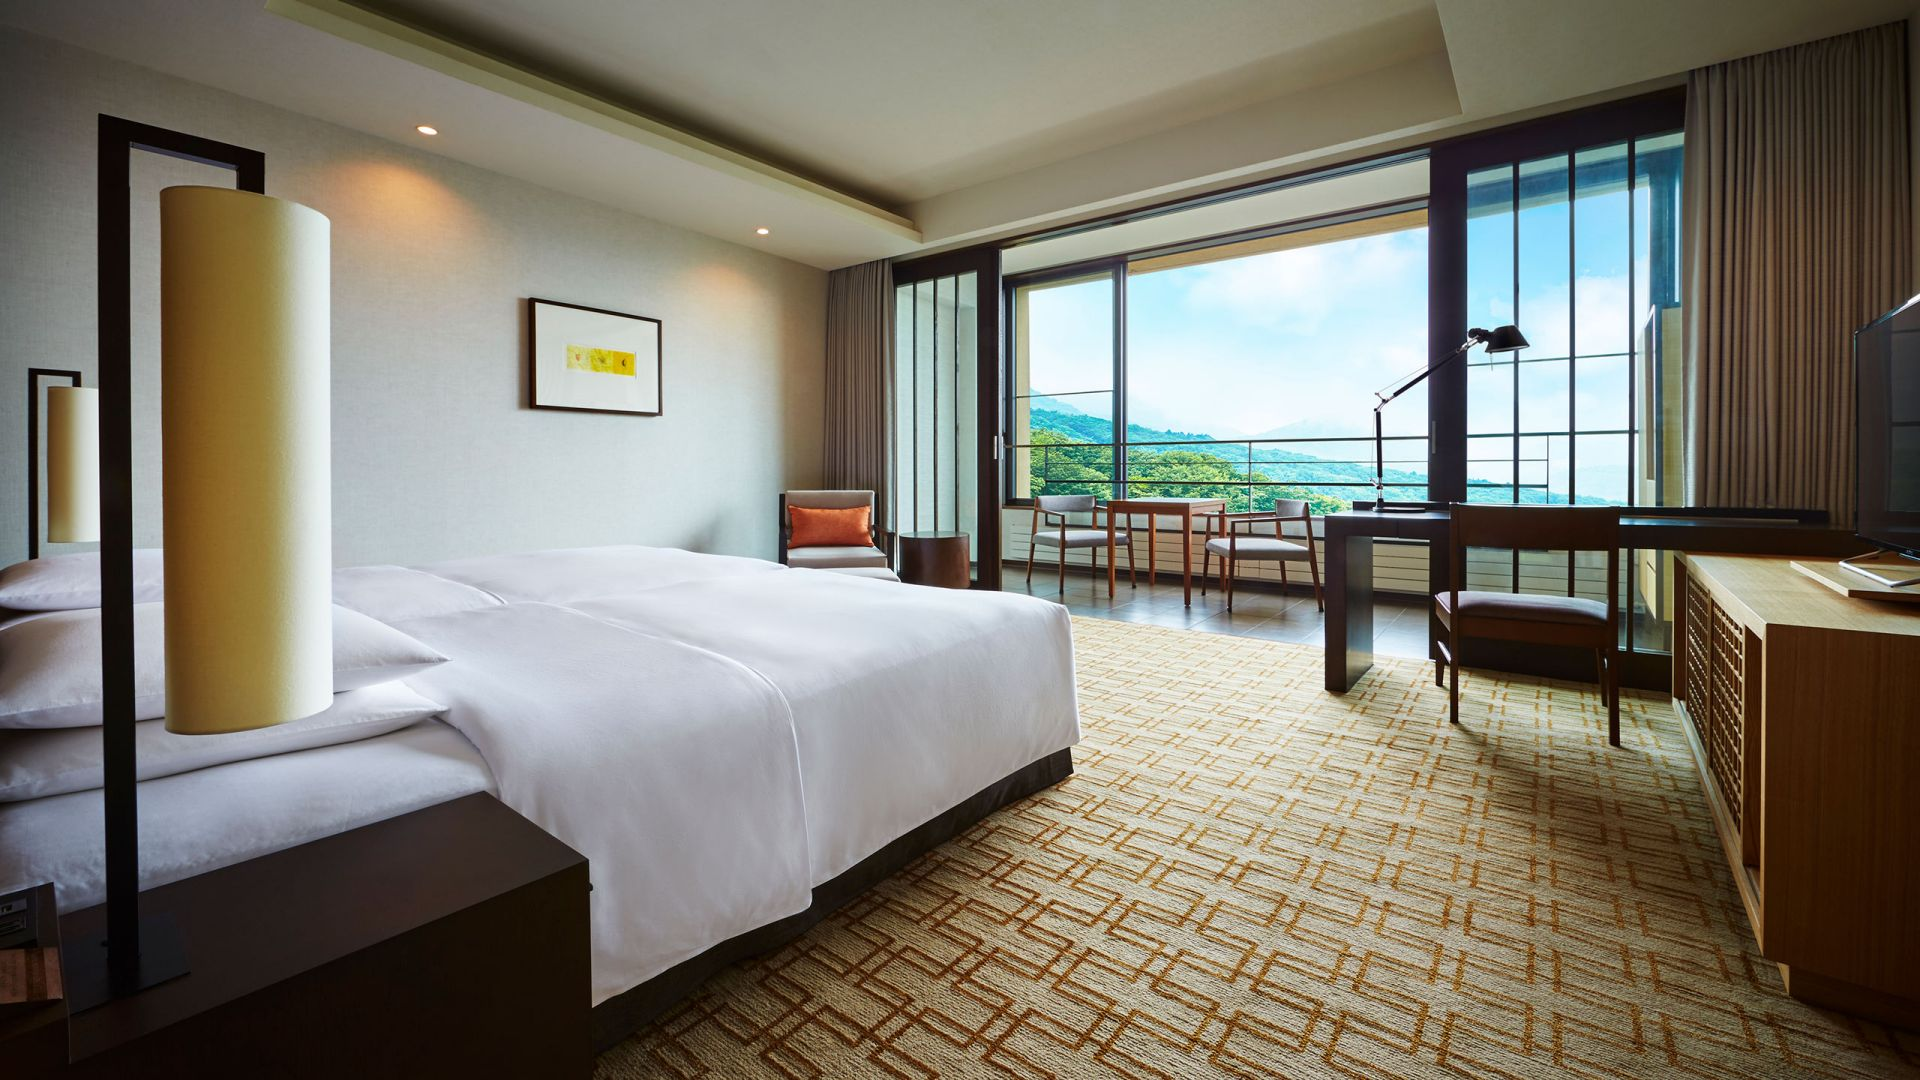 5 Star Luxury Hotel In Gora Japan Hyatt Regency Hakone